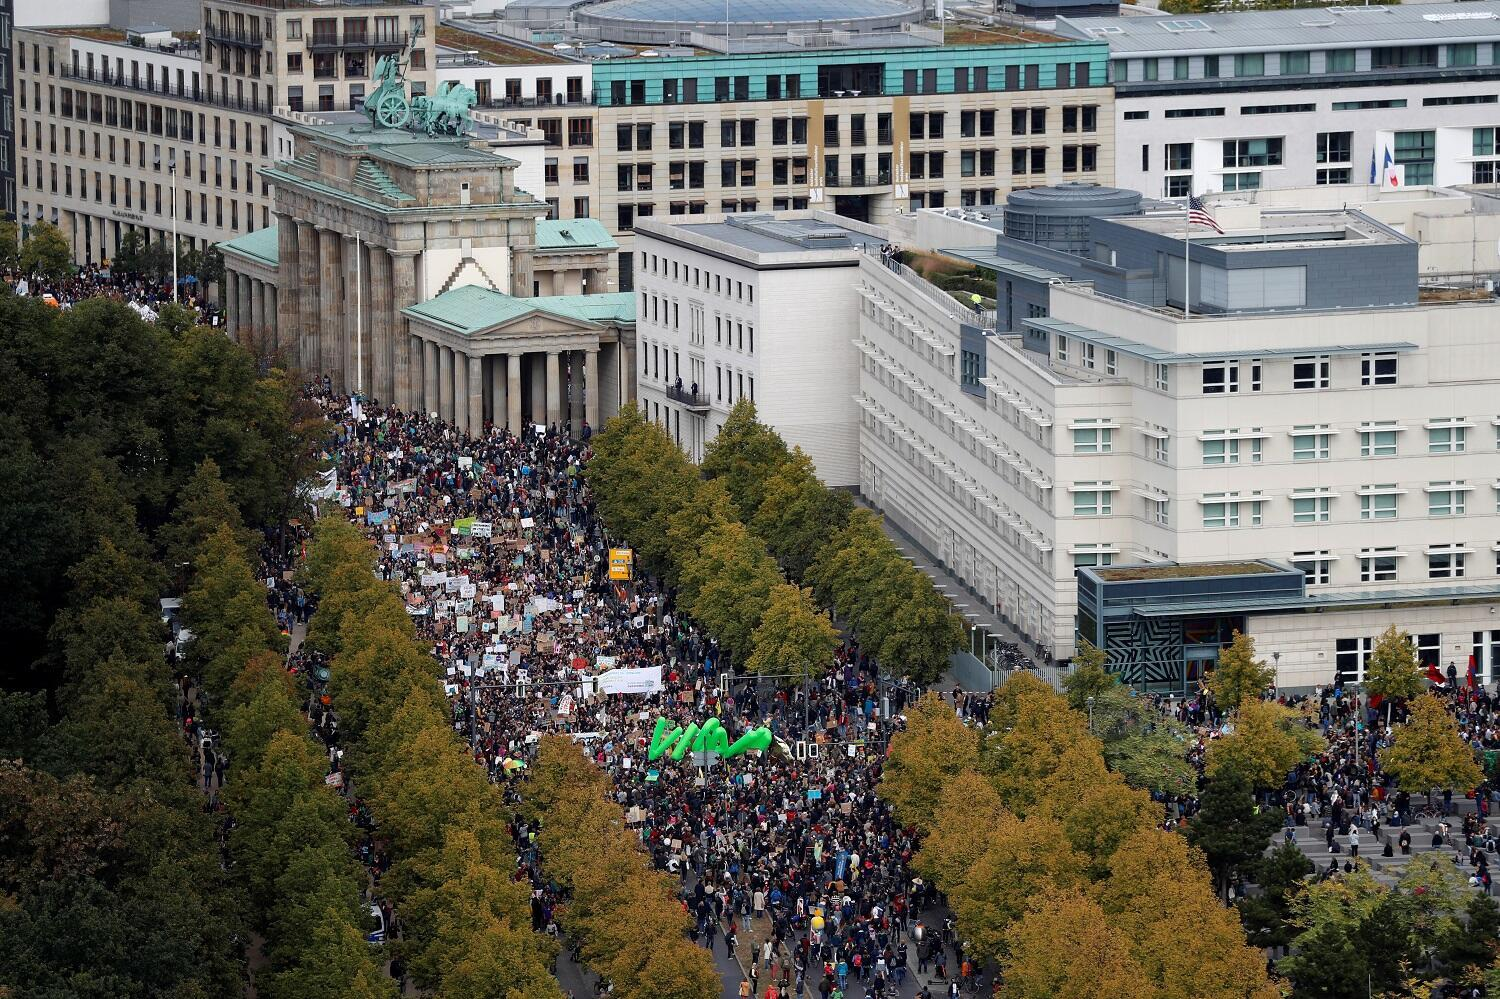 People take part in the Global Climate Strike of the movement Fridays for Future, in Berlin, Germany, September 20, 2019.